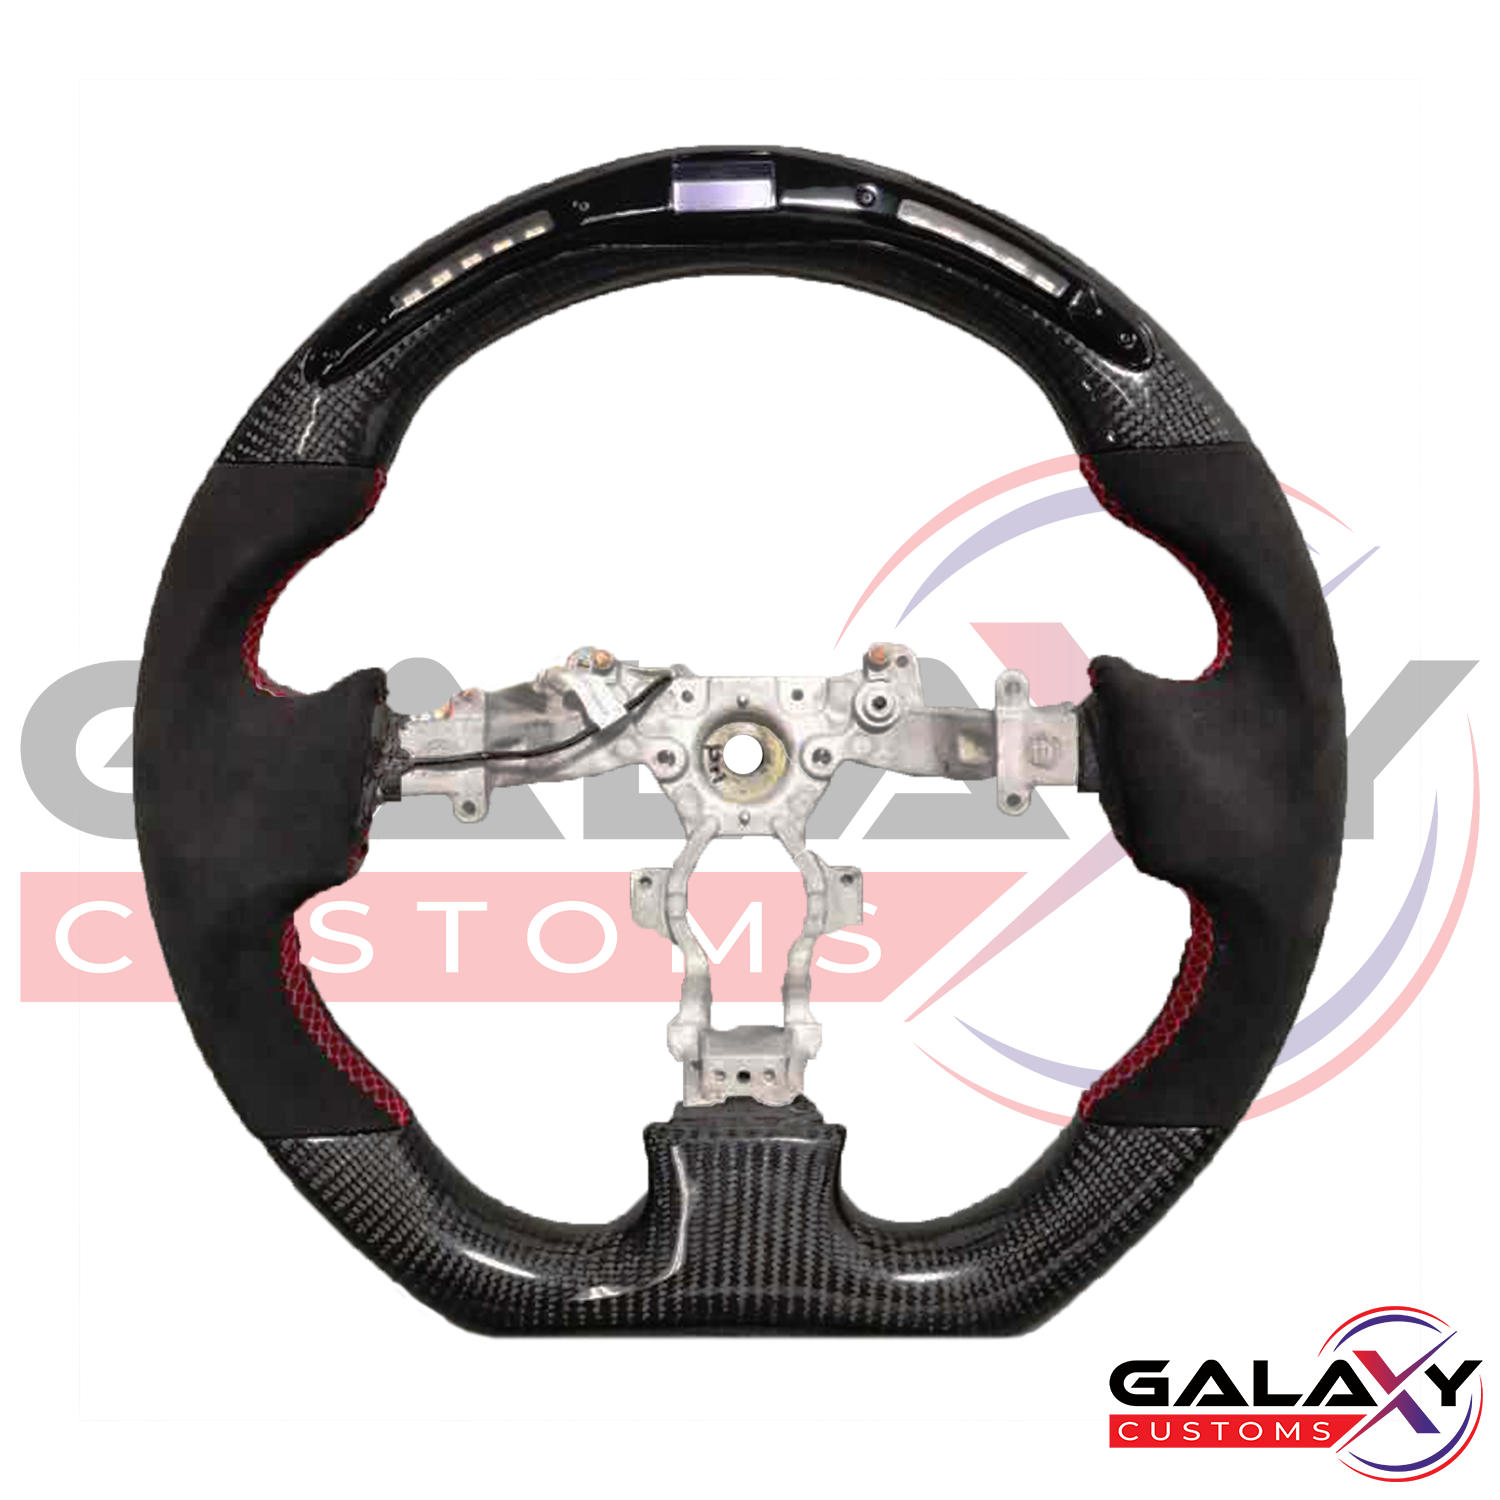 Galaxy Customs - Carbon Fiber & LED Display Steering Wheel